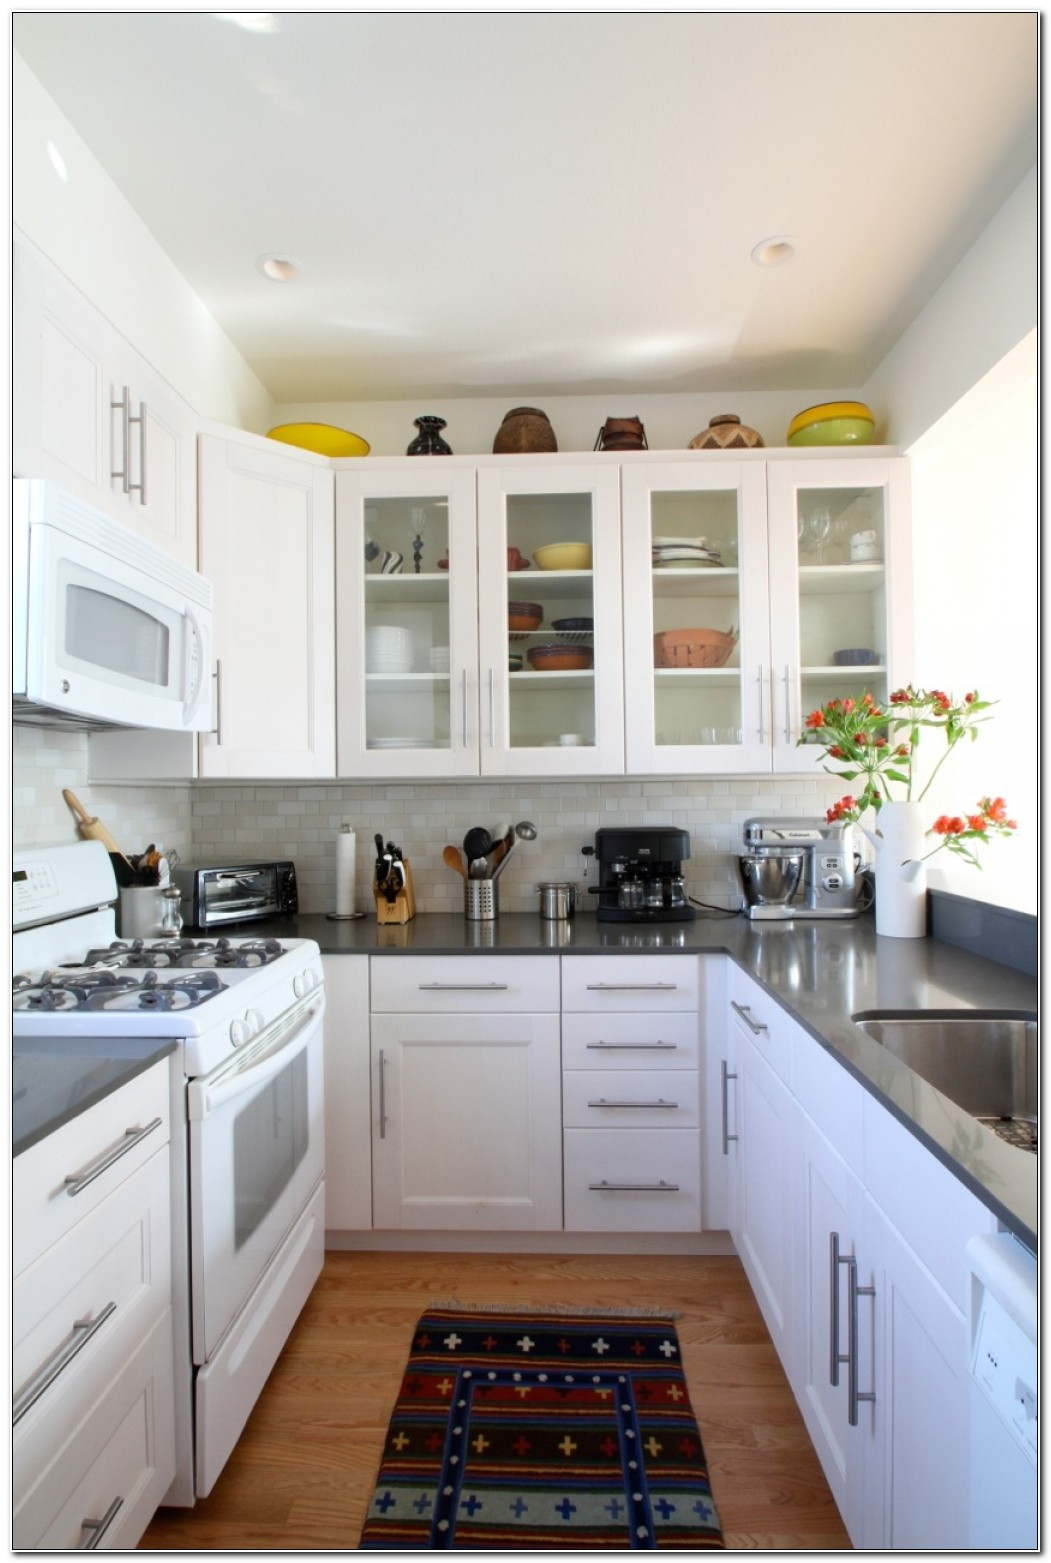 84 Lumber Company Kitchen Cabinets Equip Household